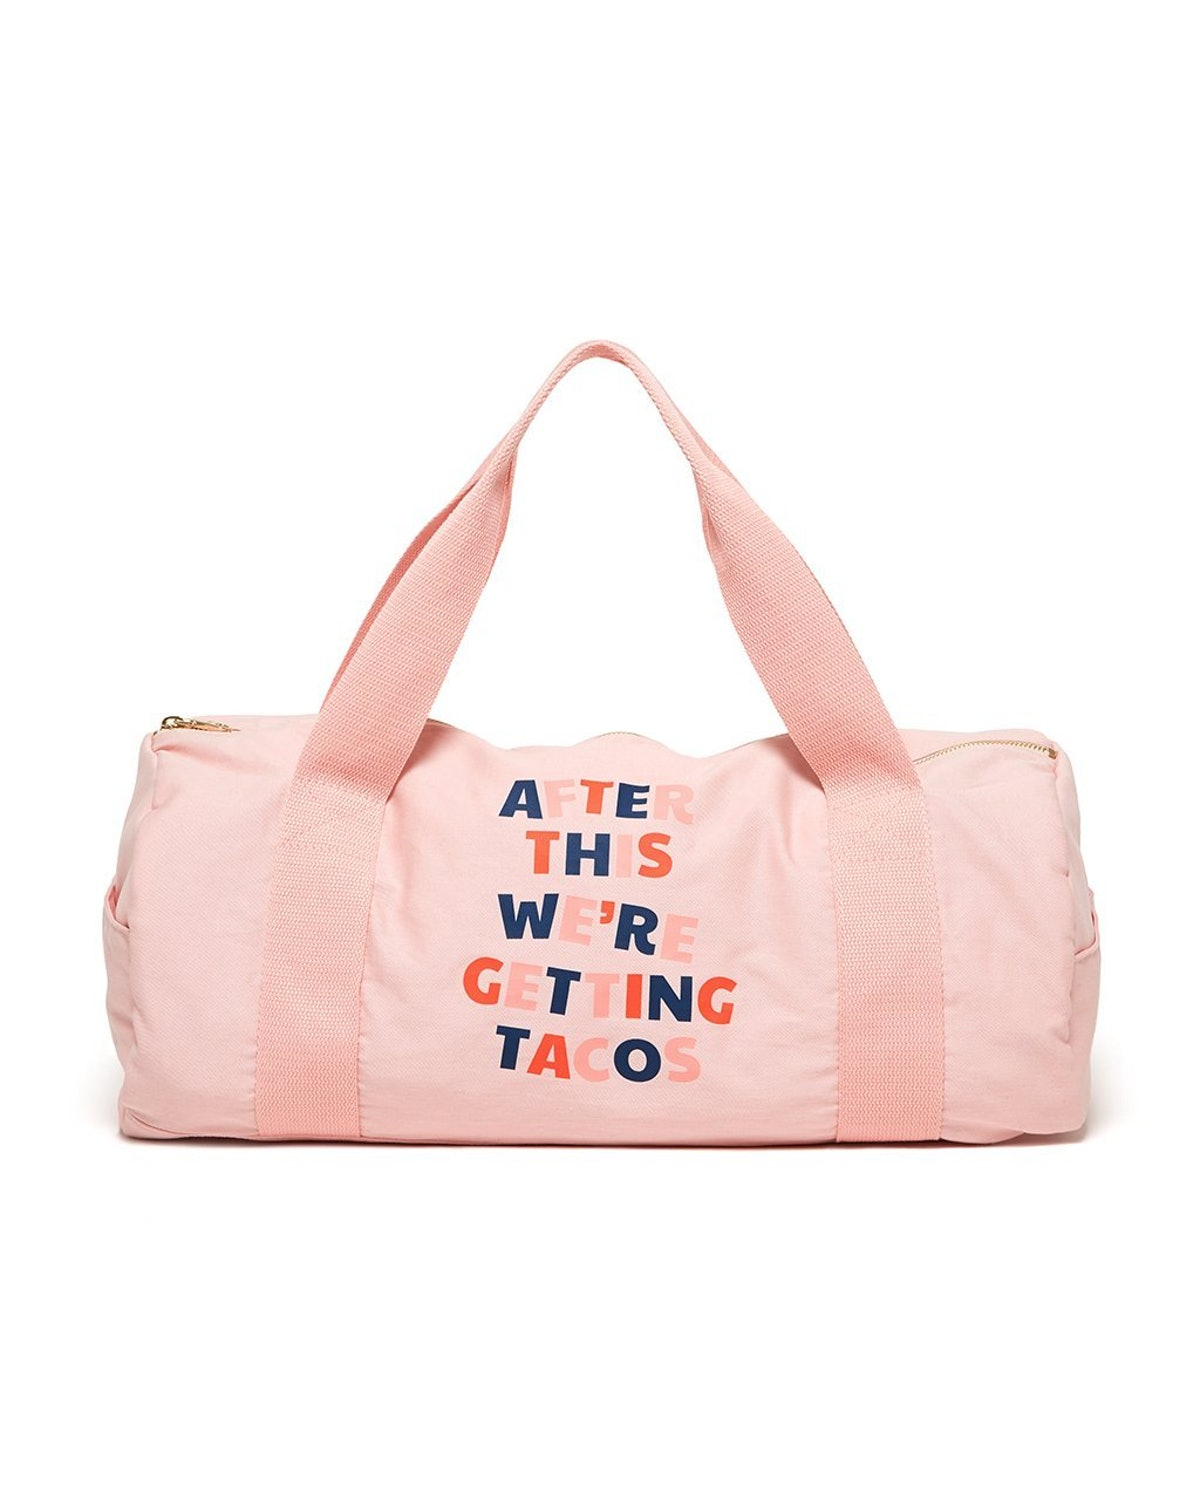 Work It Out Gym Bag — After This We're Getting Tacos